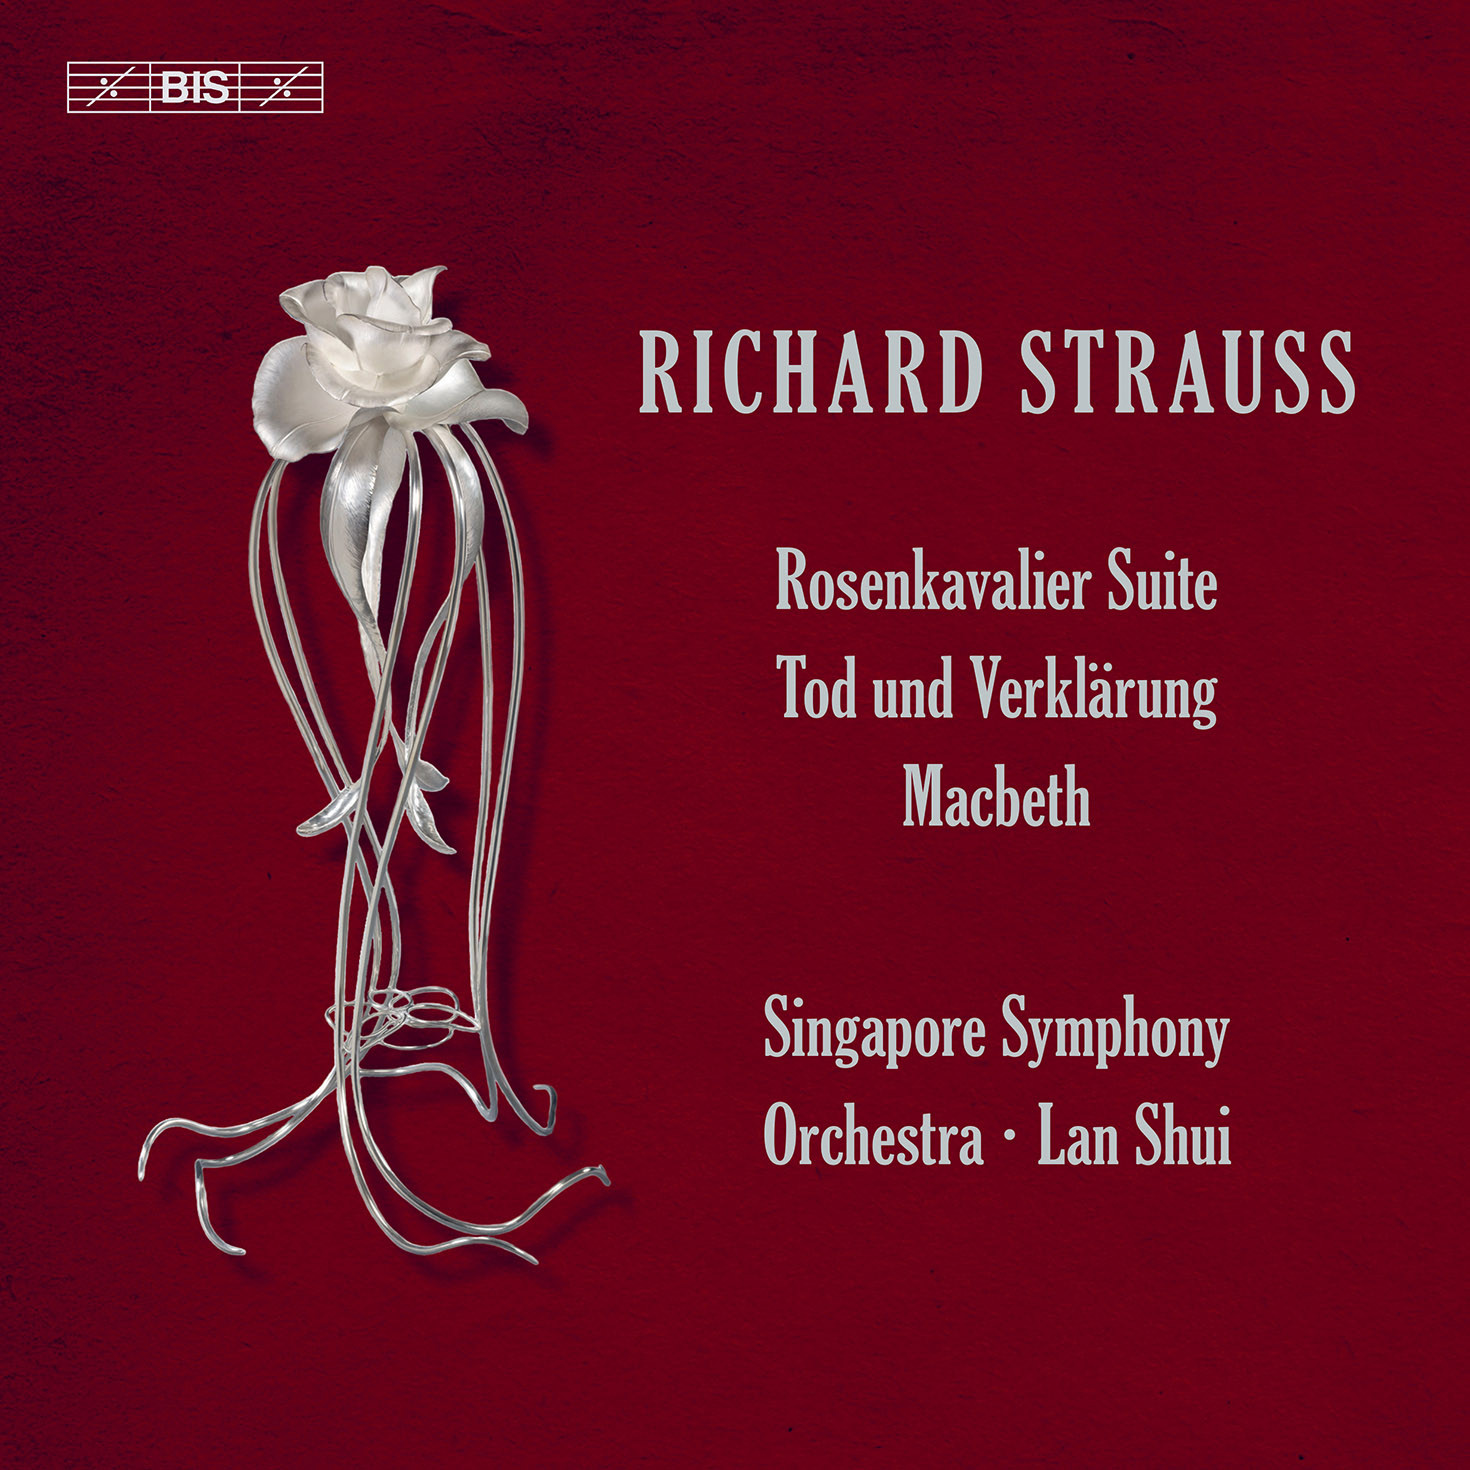 Richard Strauss - Rosenkavalier Suite and other works